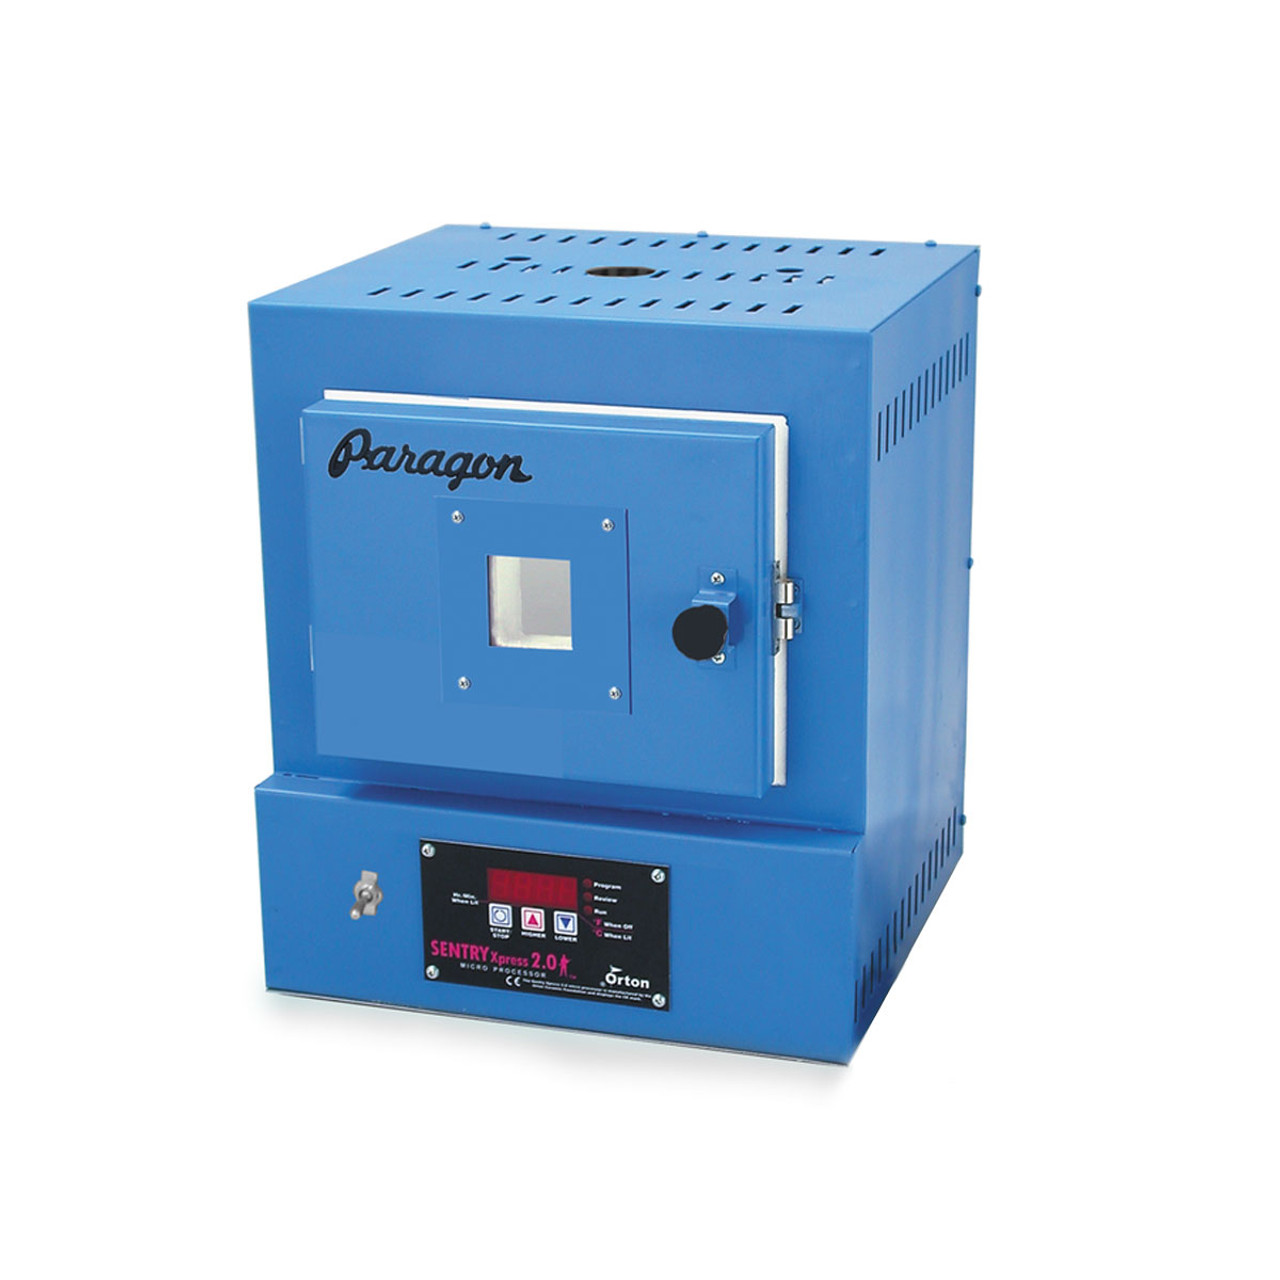 Paragon SC2 Programmable Kiln with Window - Blue